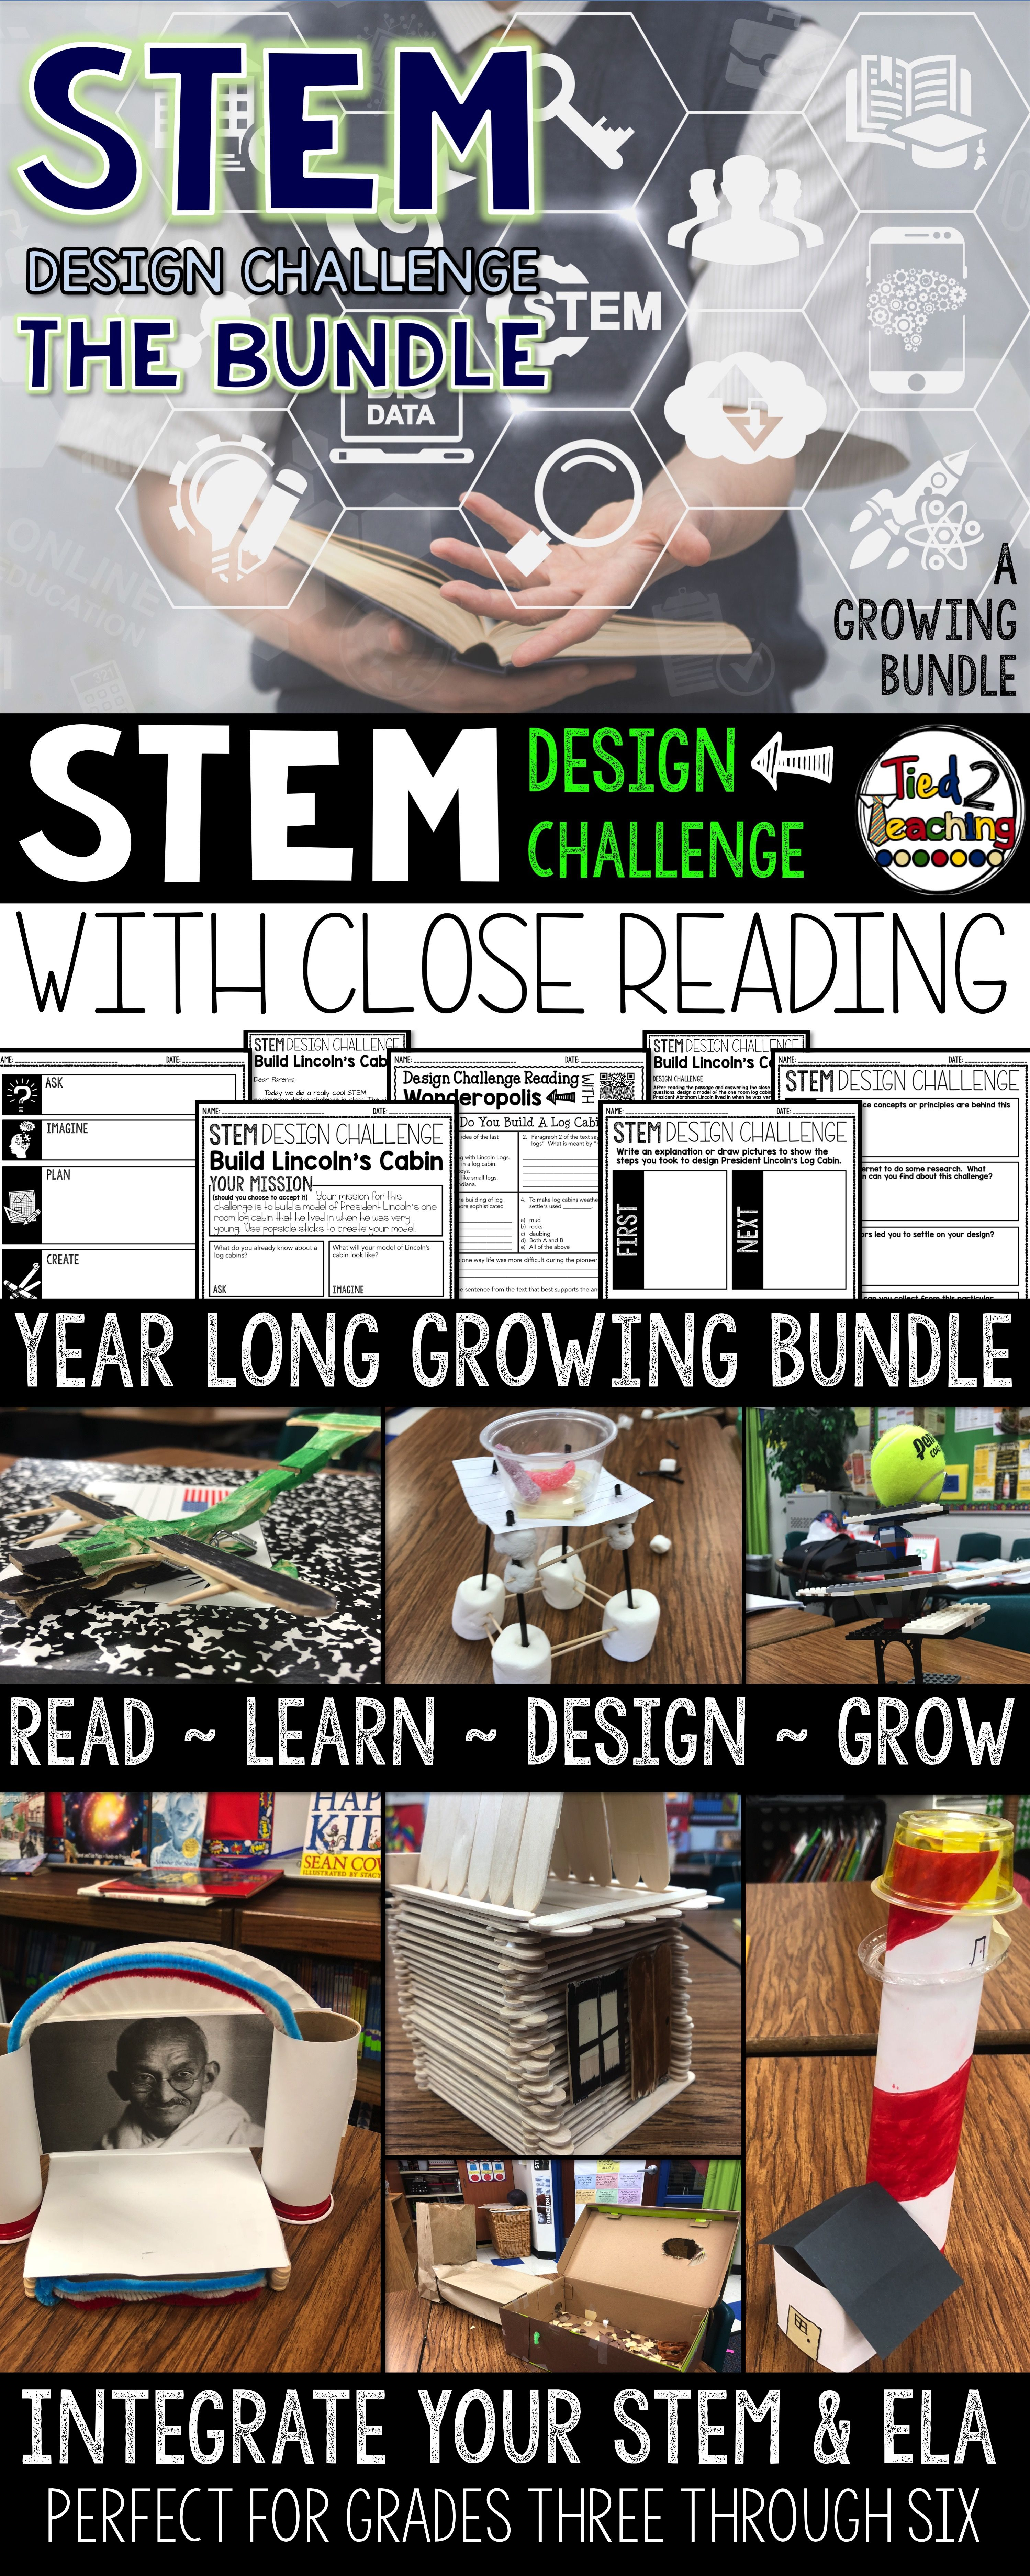 STEM with CLOSE READING series! Each challenge seamlessly allows you to tie together the curriculum by giving you rigorous text dependent questions that go with a high interest reading passage in addition to the fun STEM! Take your students to new heights and let the STEM adventure begin in your classroom this year! Integrating ELA into your STEM challenges has never been easier. Use the close reading passages and questions to get the kids pumped up for each challenge you present them with!